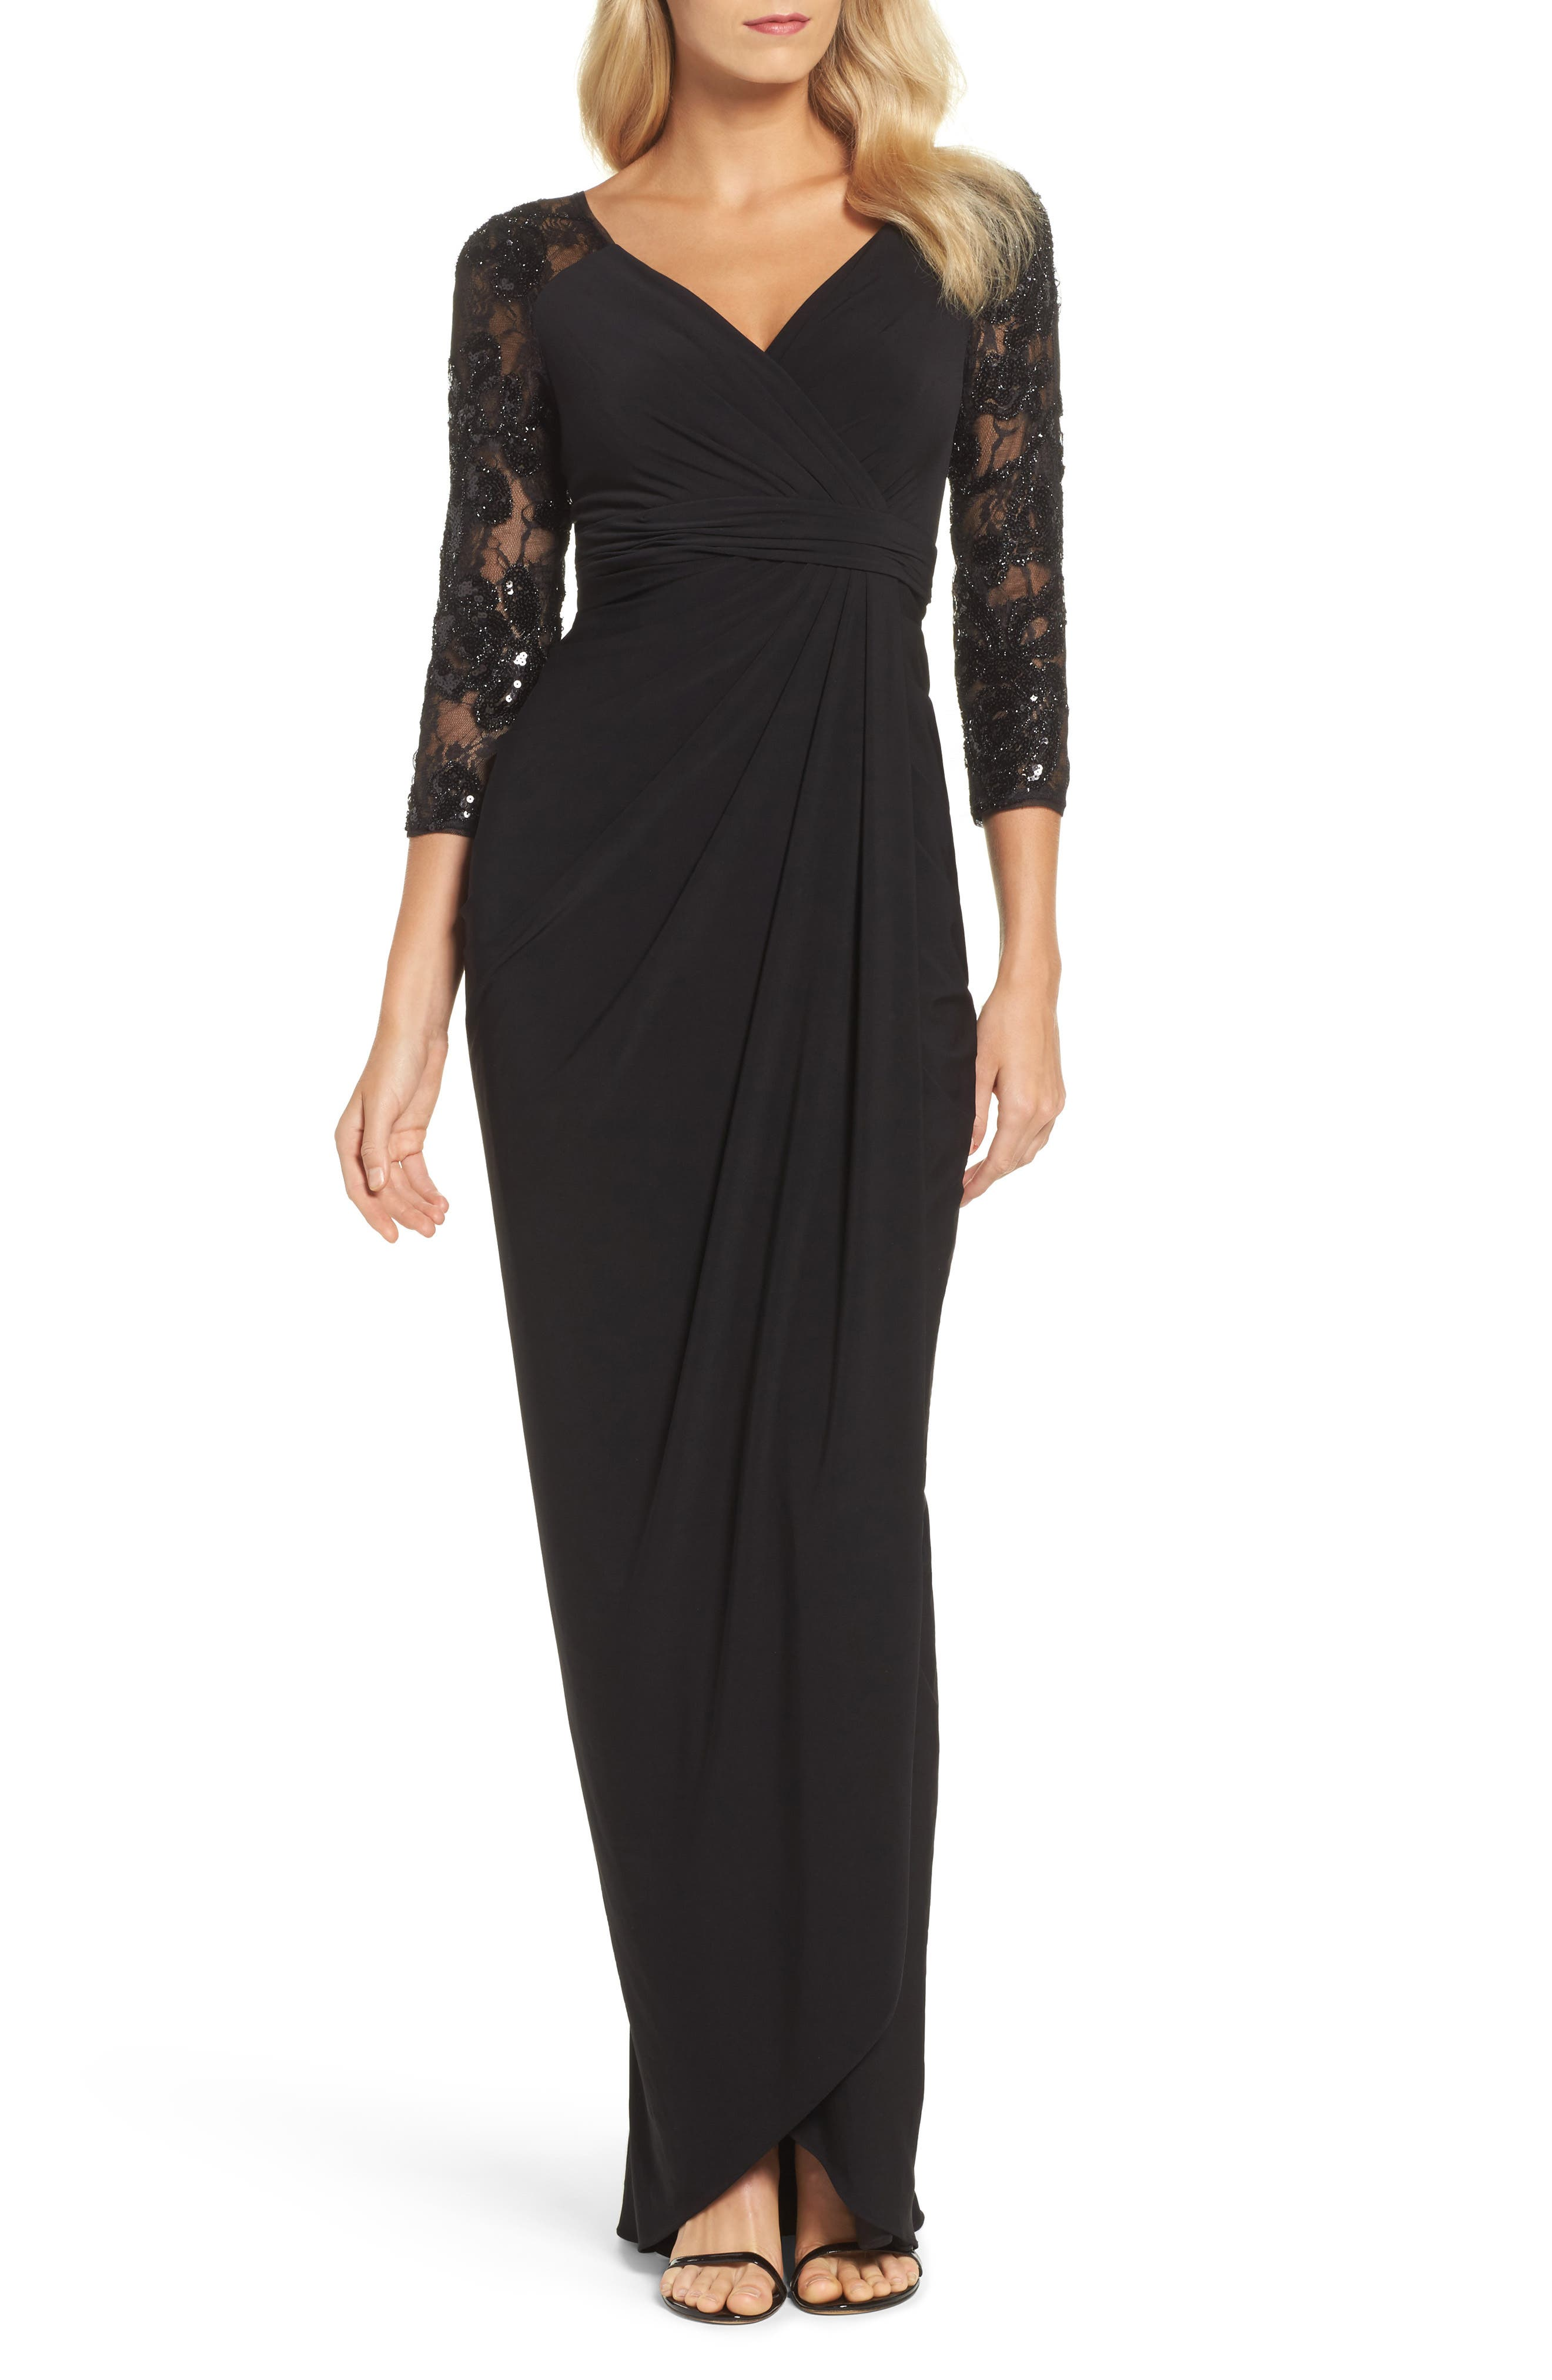 Adrianna Papell Lace Sleeve Gathered Gown